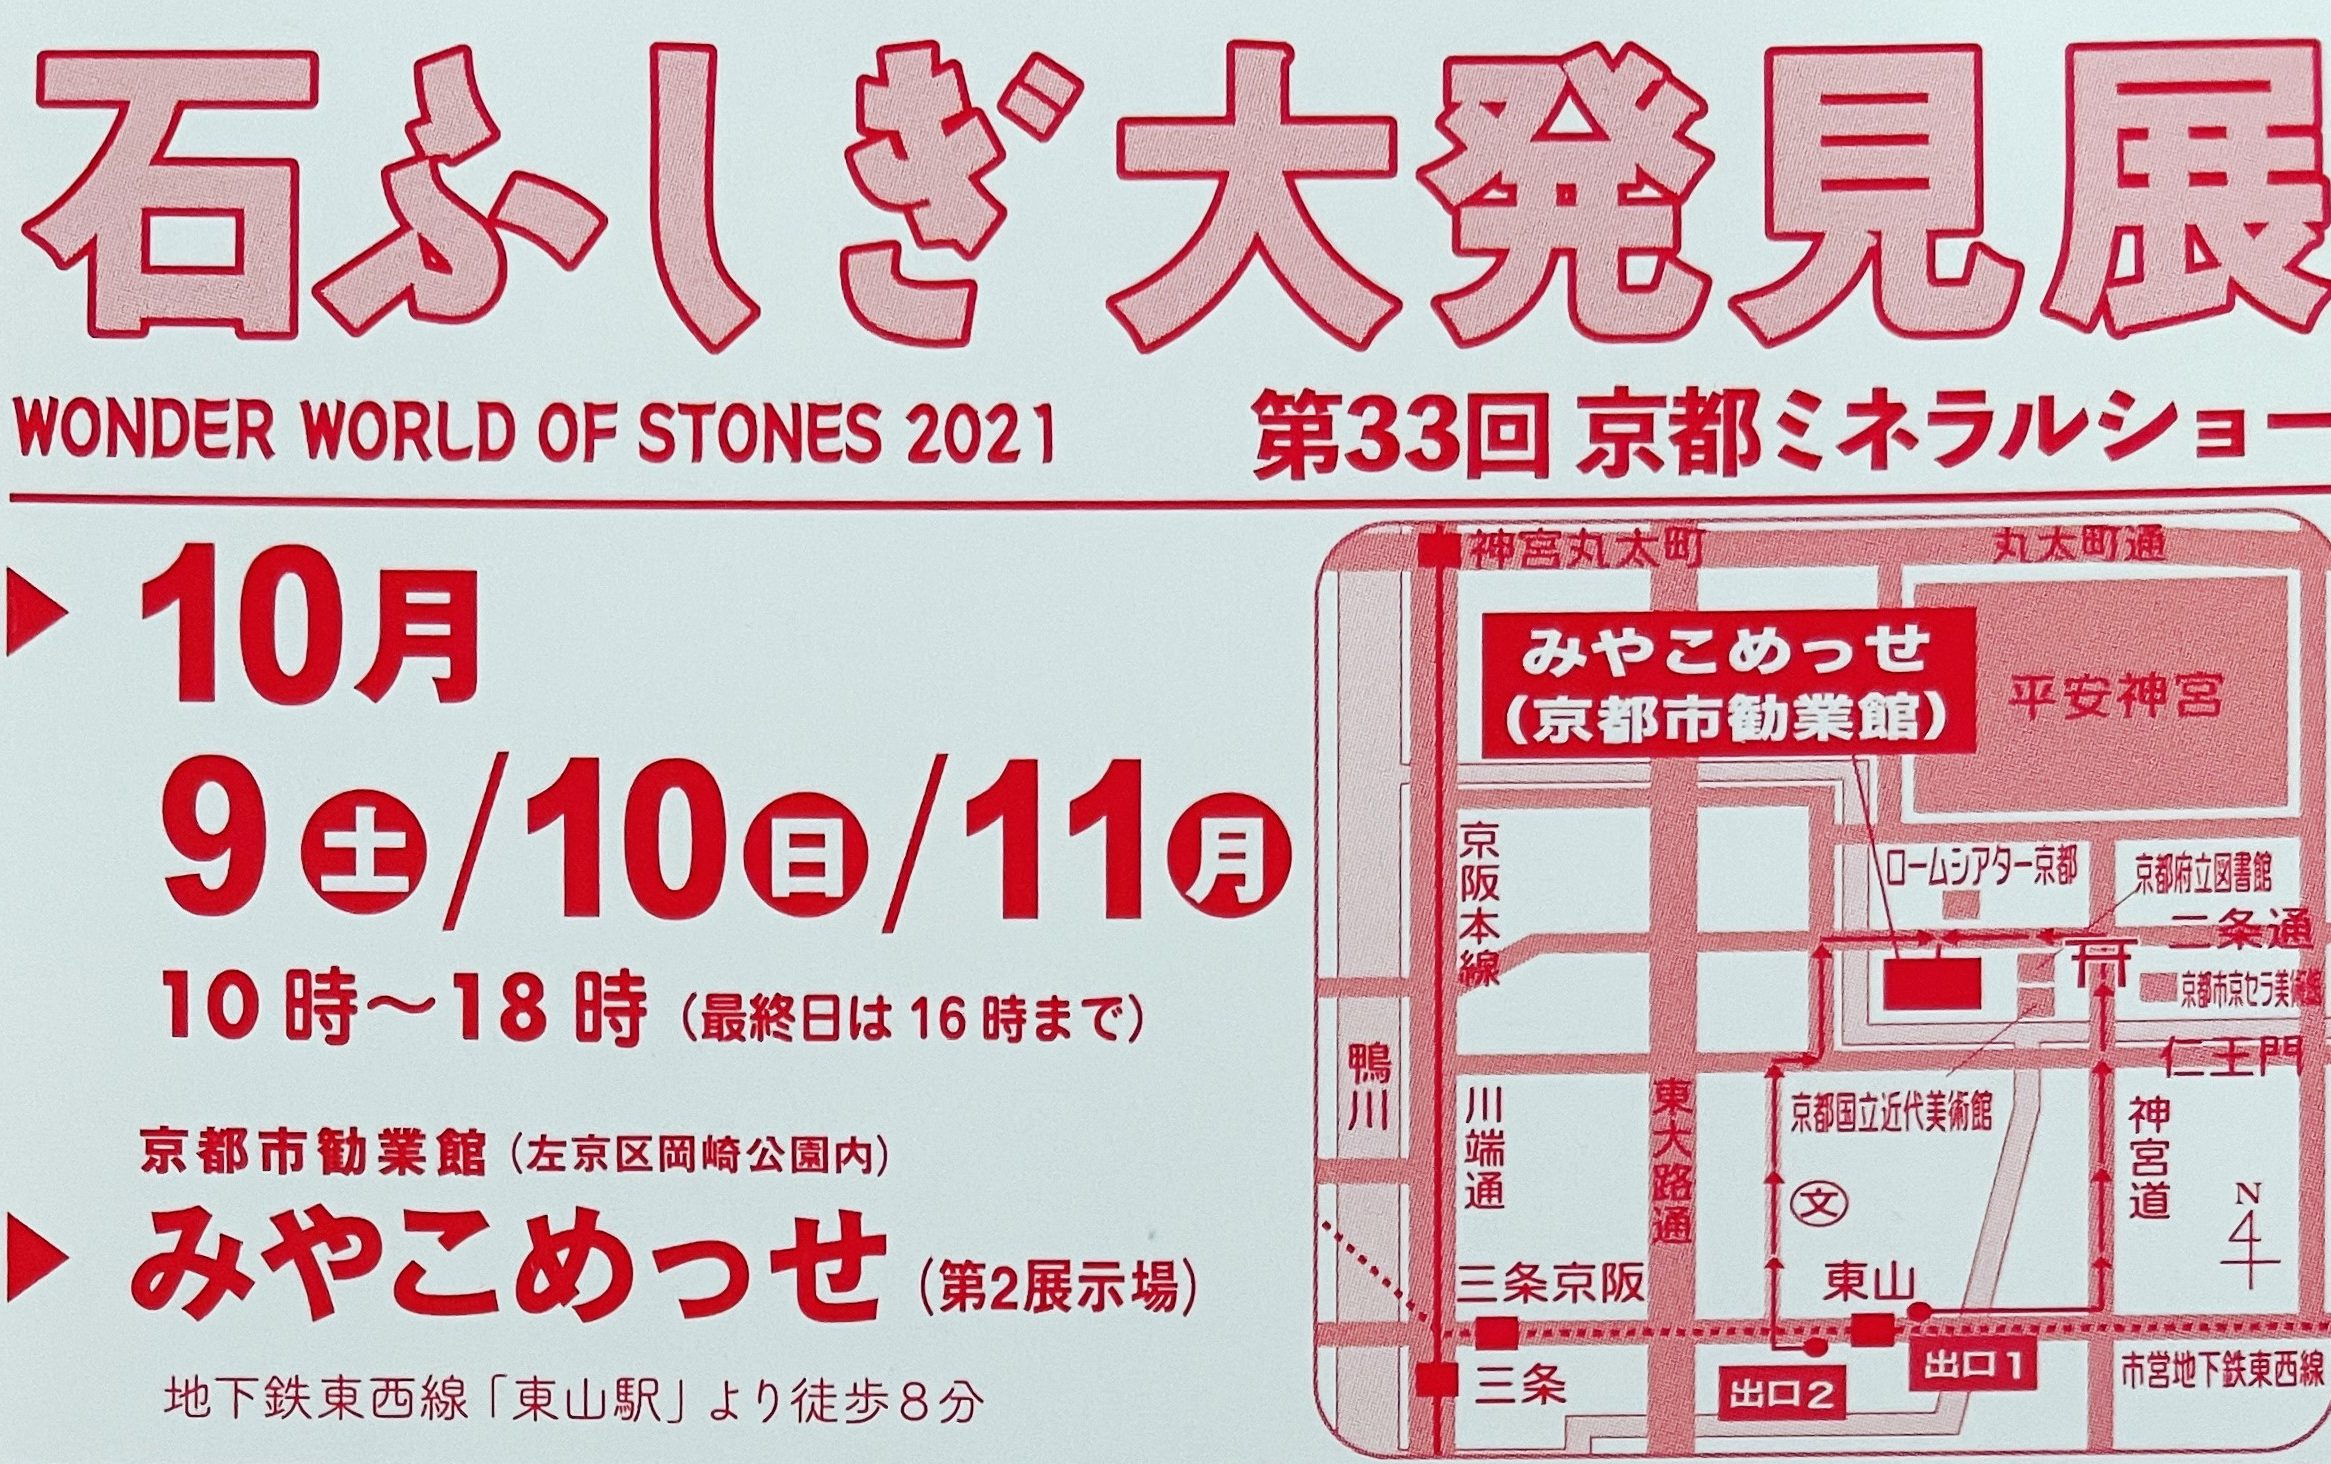 Kyoto Mineral Show